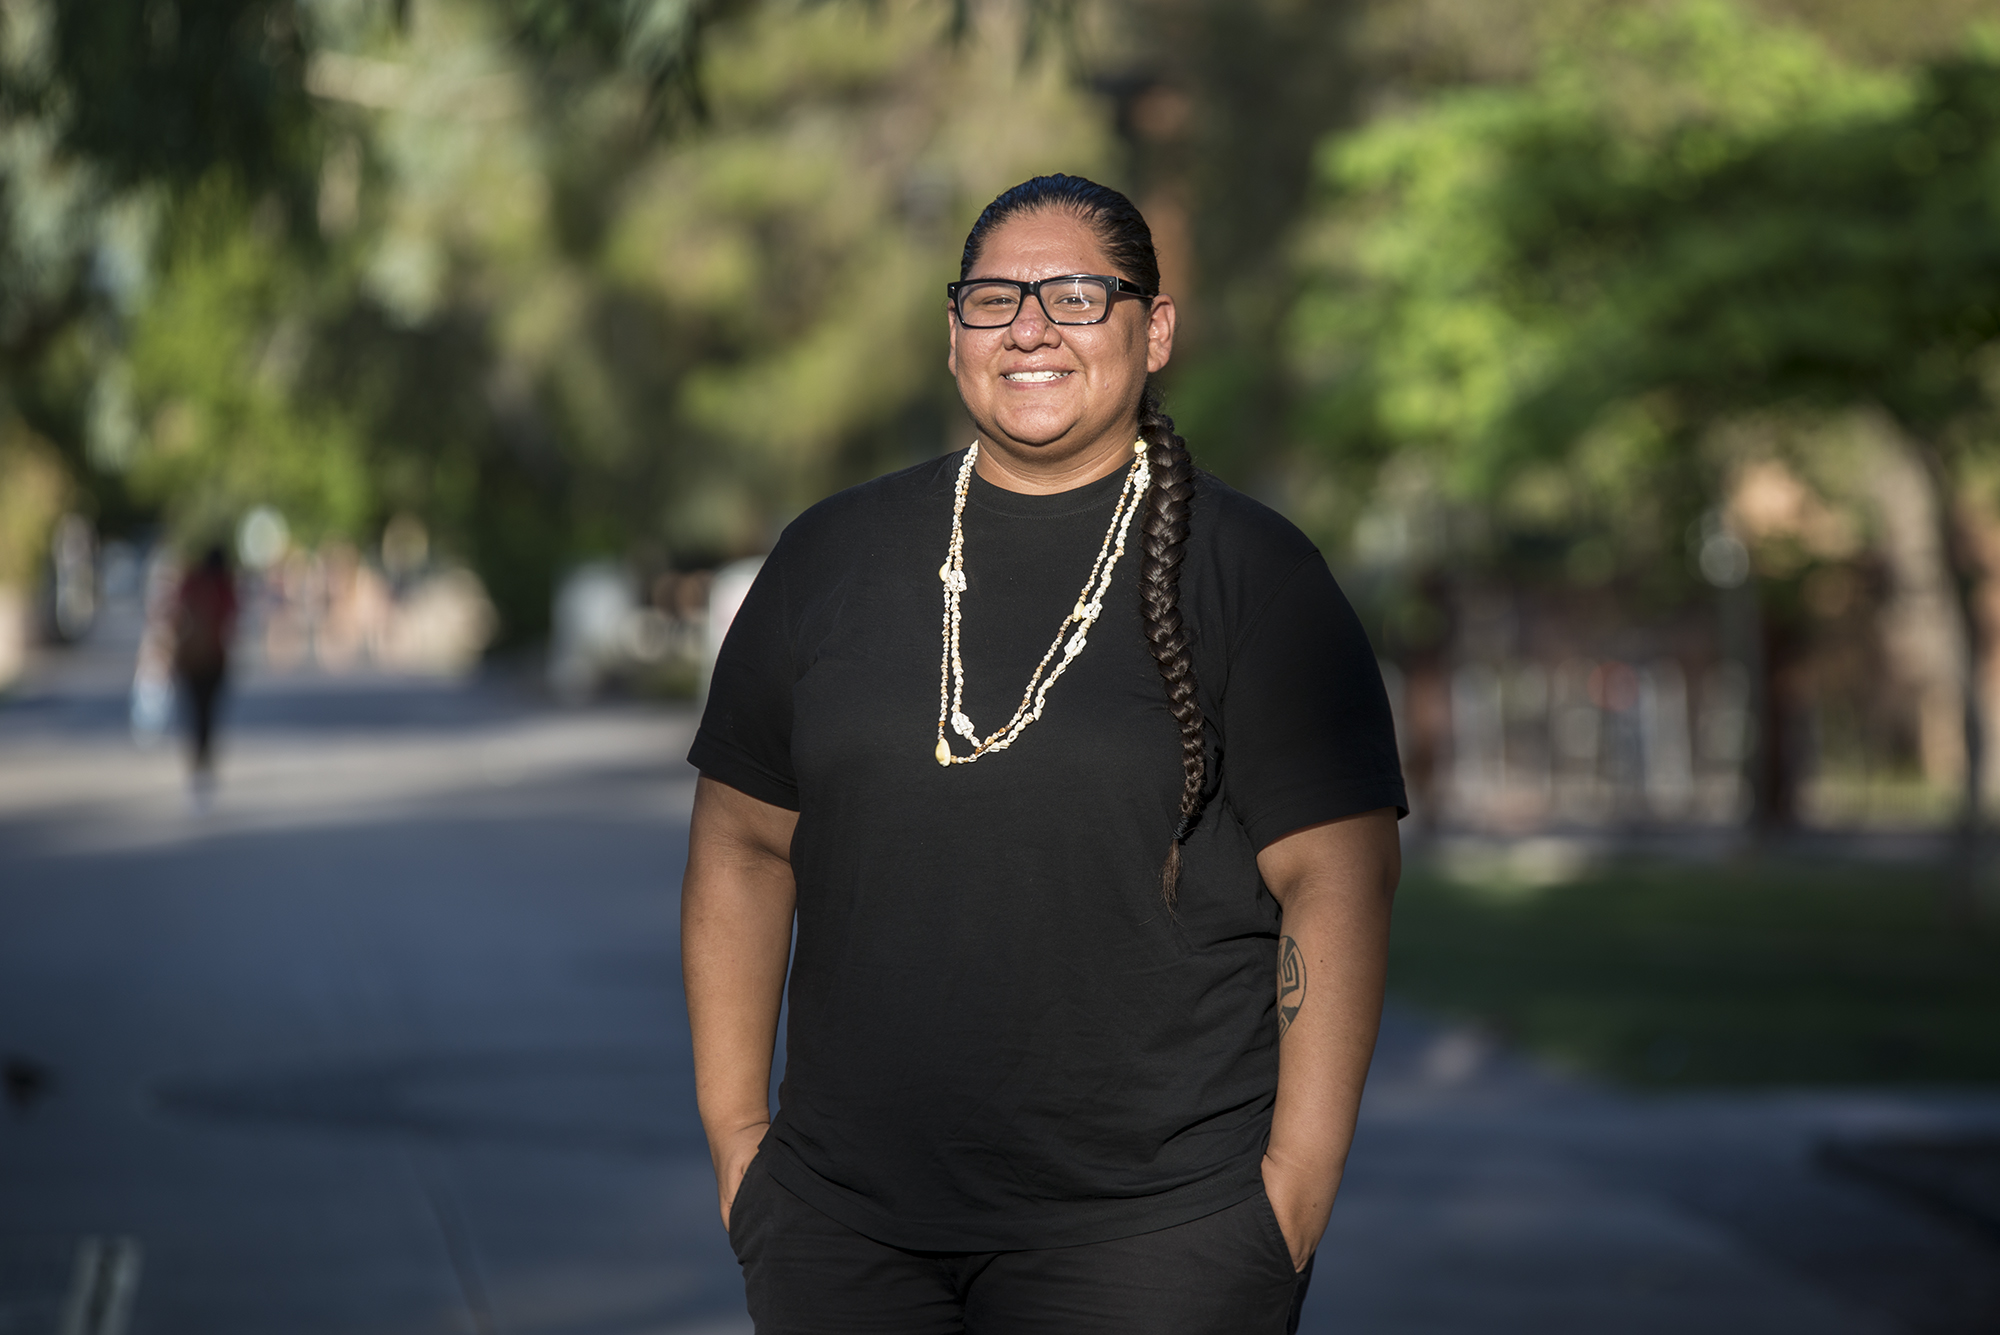 Native Americans still fighting for voting equality